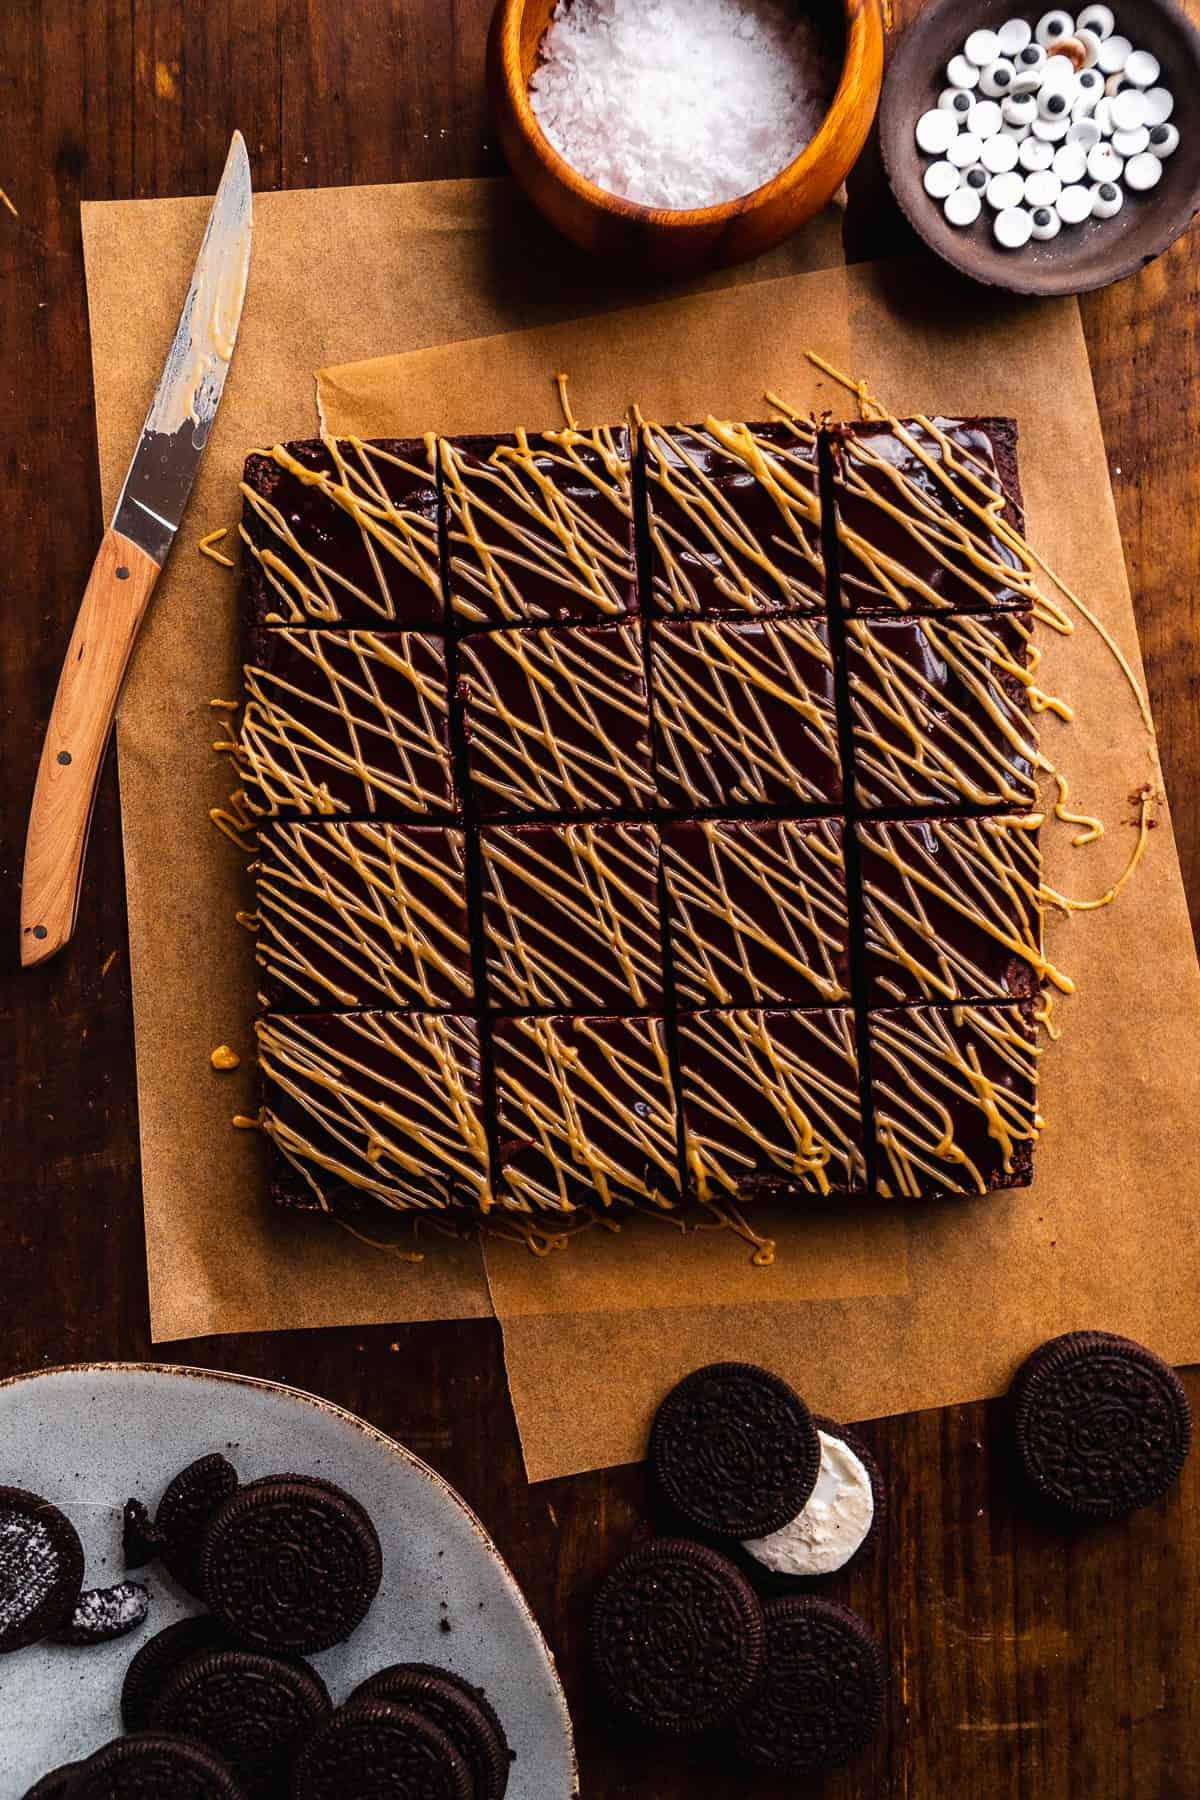 Brownies sliced into squares with almond butter icing drizzled on top on a wooden surface.